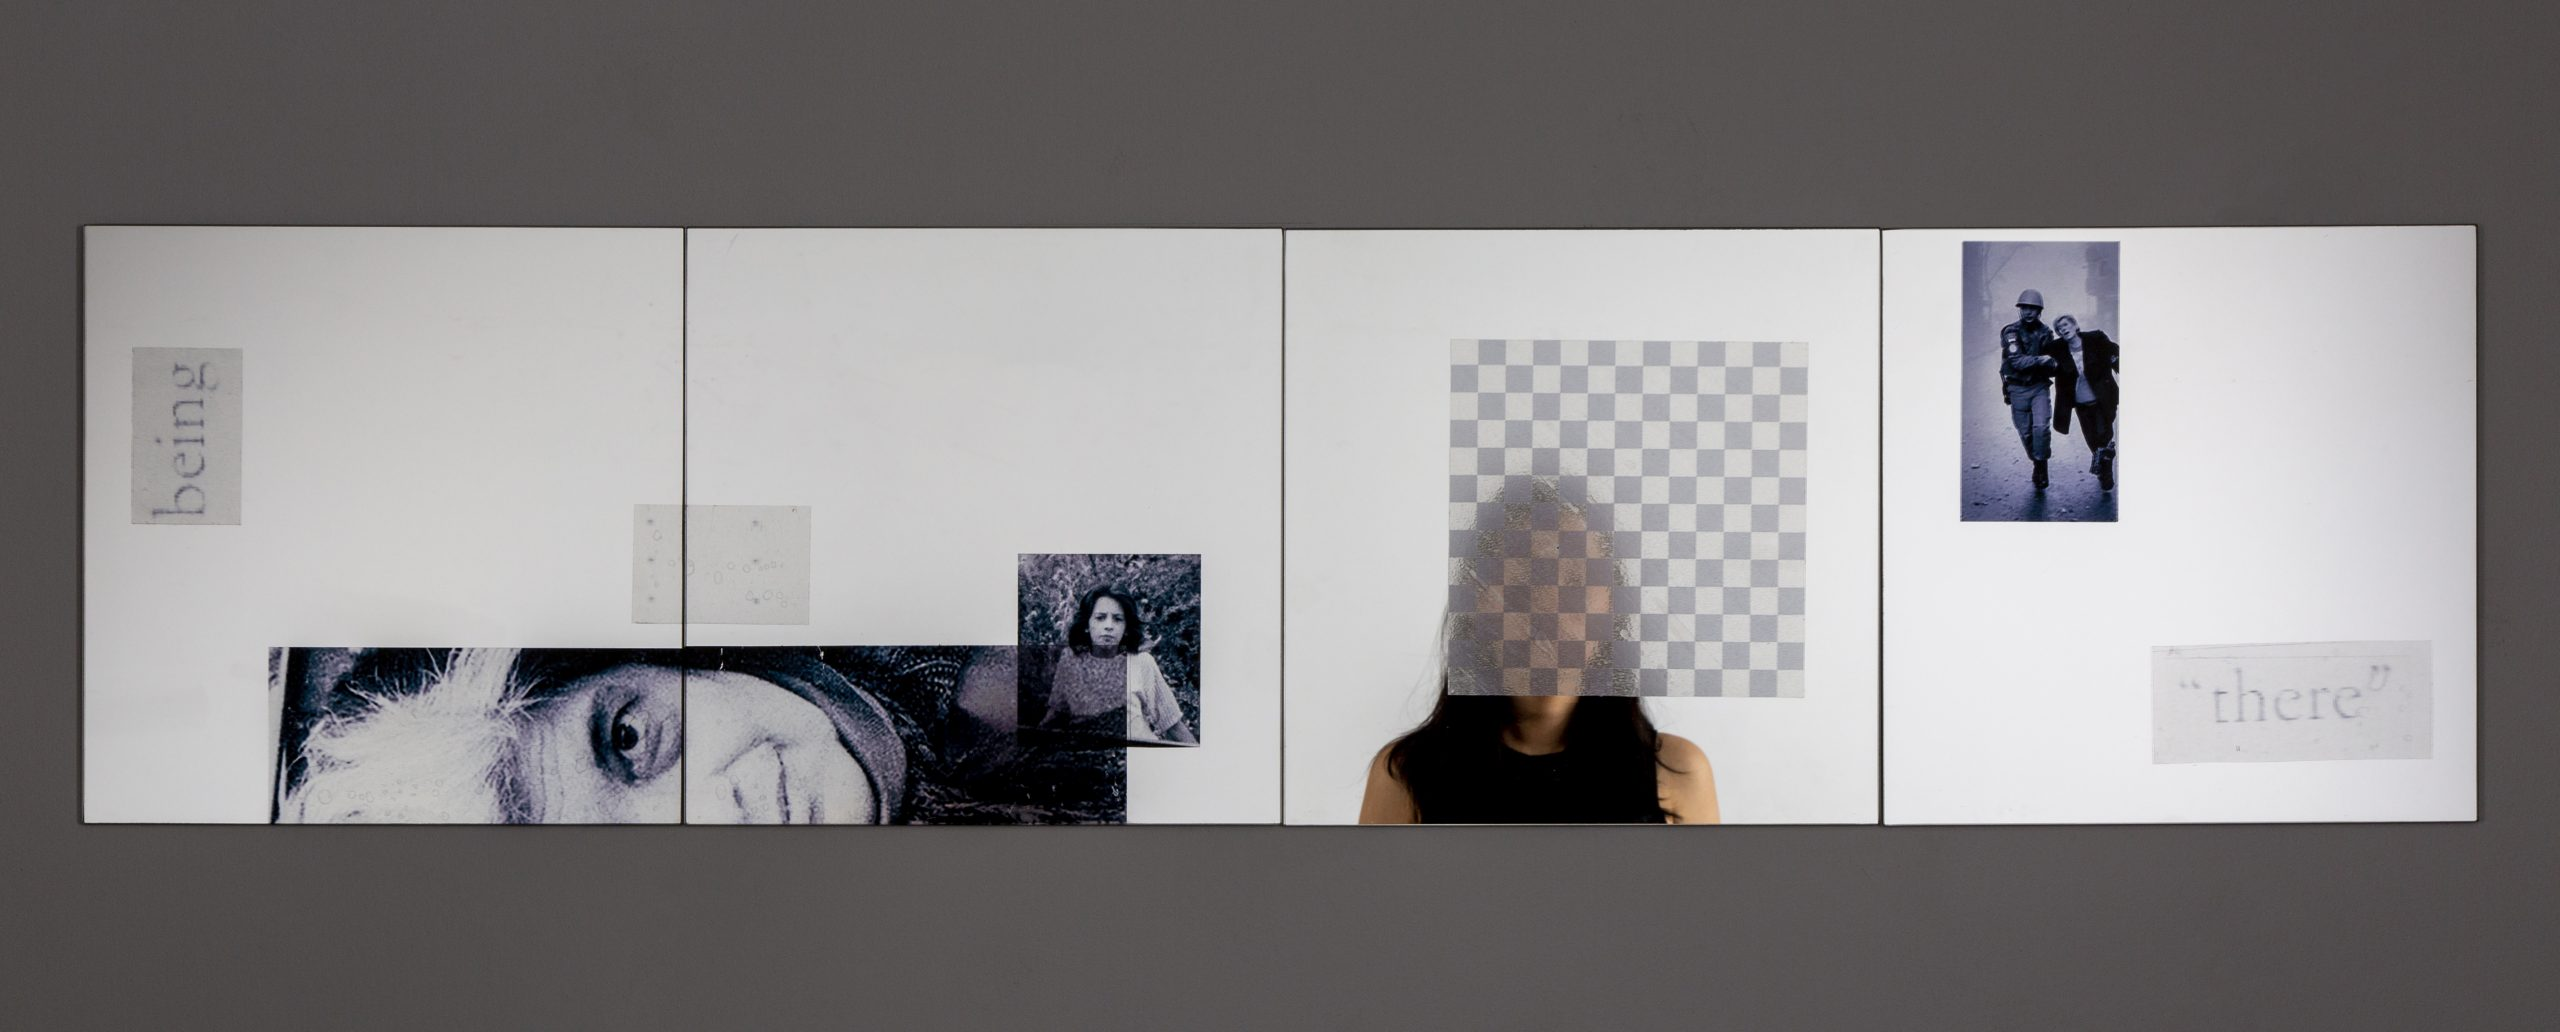 Jennifer Chia-ling Ho (何珈寧), Here And There, 2020. Clear Adhesive Film On Mirrors. 48 X 12 Inches Courtesy Of The Artist.